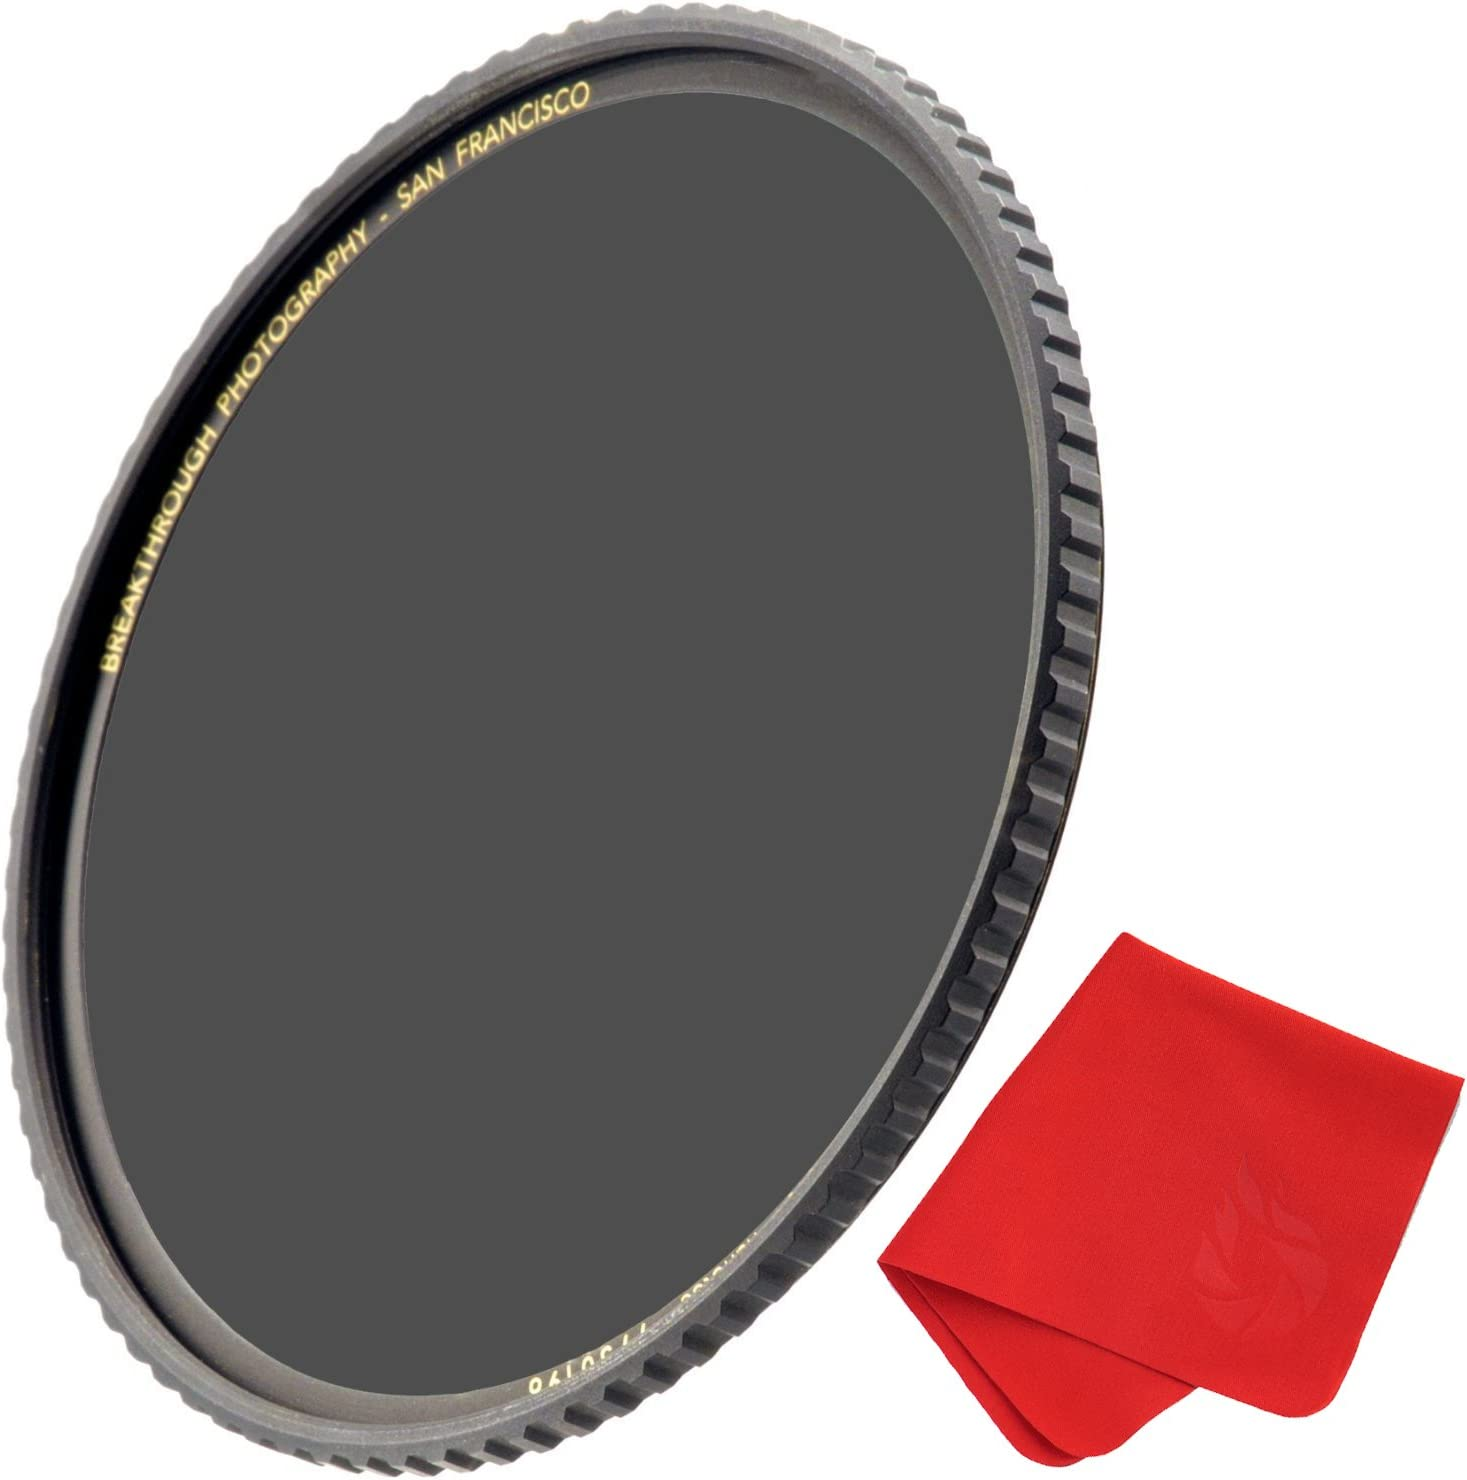 MRC16 Schott B270 Glass Breakthrough Photography 46mm X4 10-Stop Fixed ND Filter for Camera Lenses Neutral Density Professional Photography Filter UltraSlim Nanotec WeatherSealed